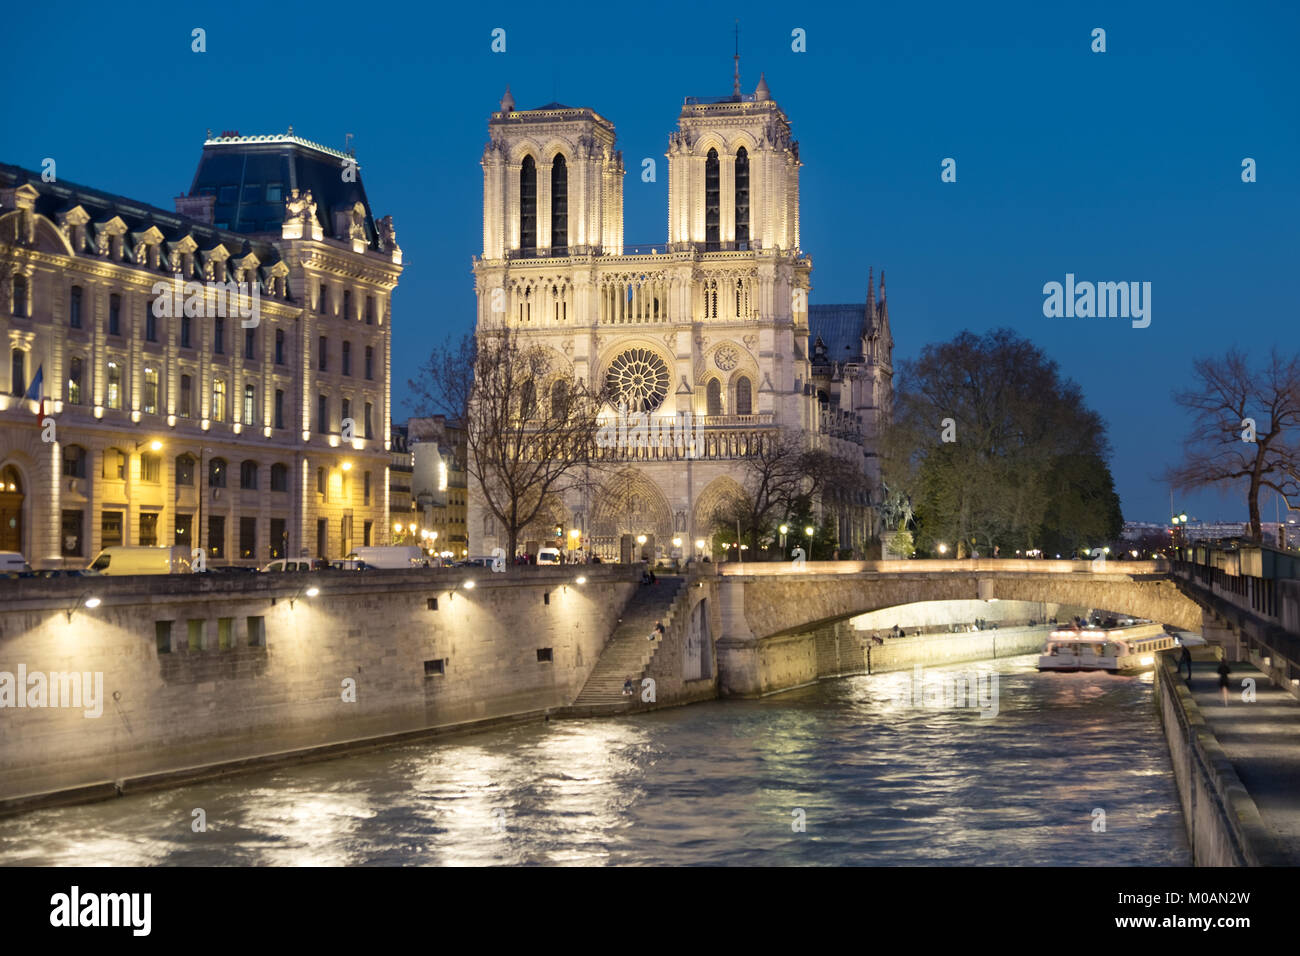 Romantic Paris, illuminated Seine river and Notre-Dame cathedral at night.  Panoramic image, shallow DOF, focus - Stock Image